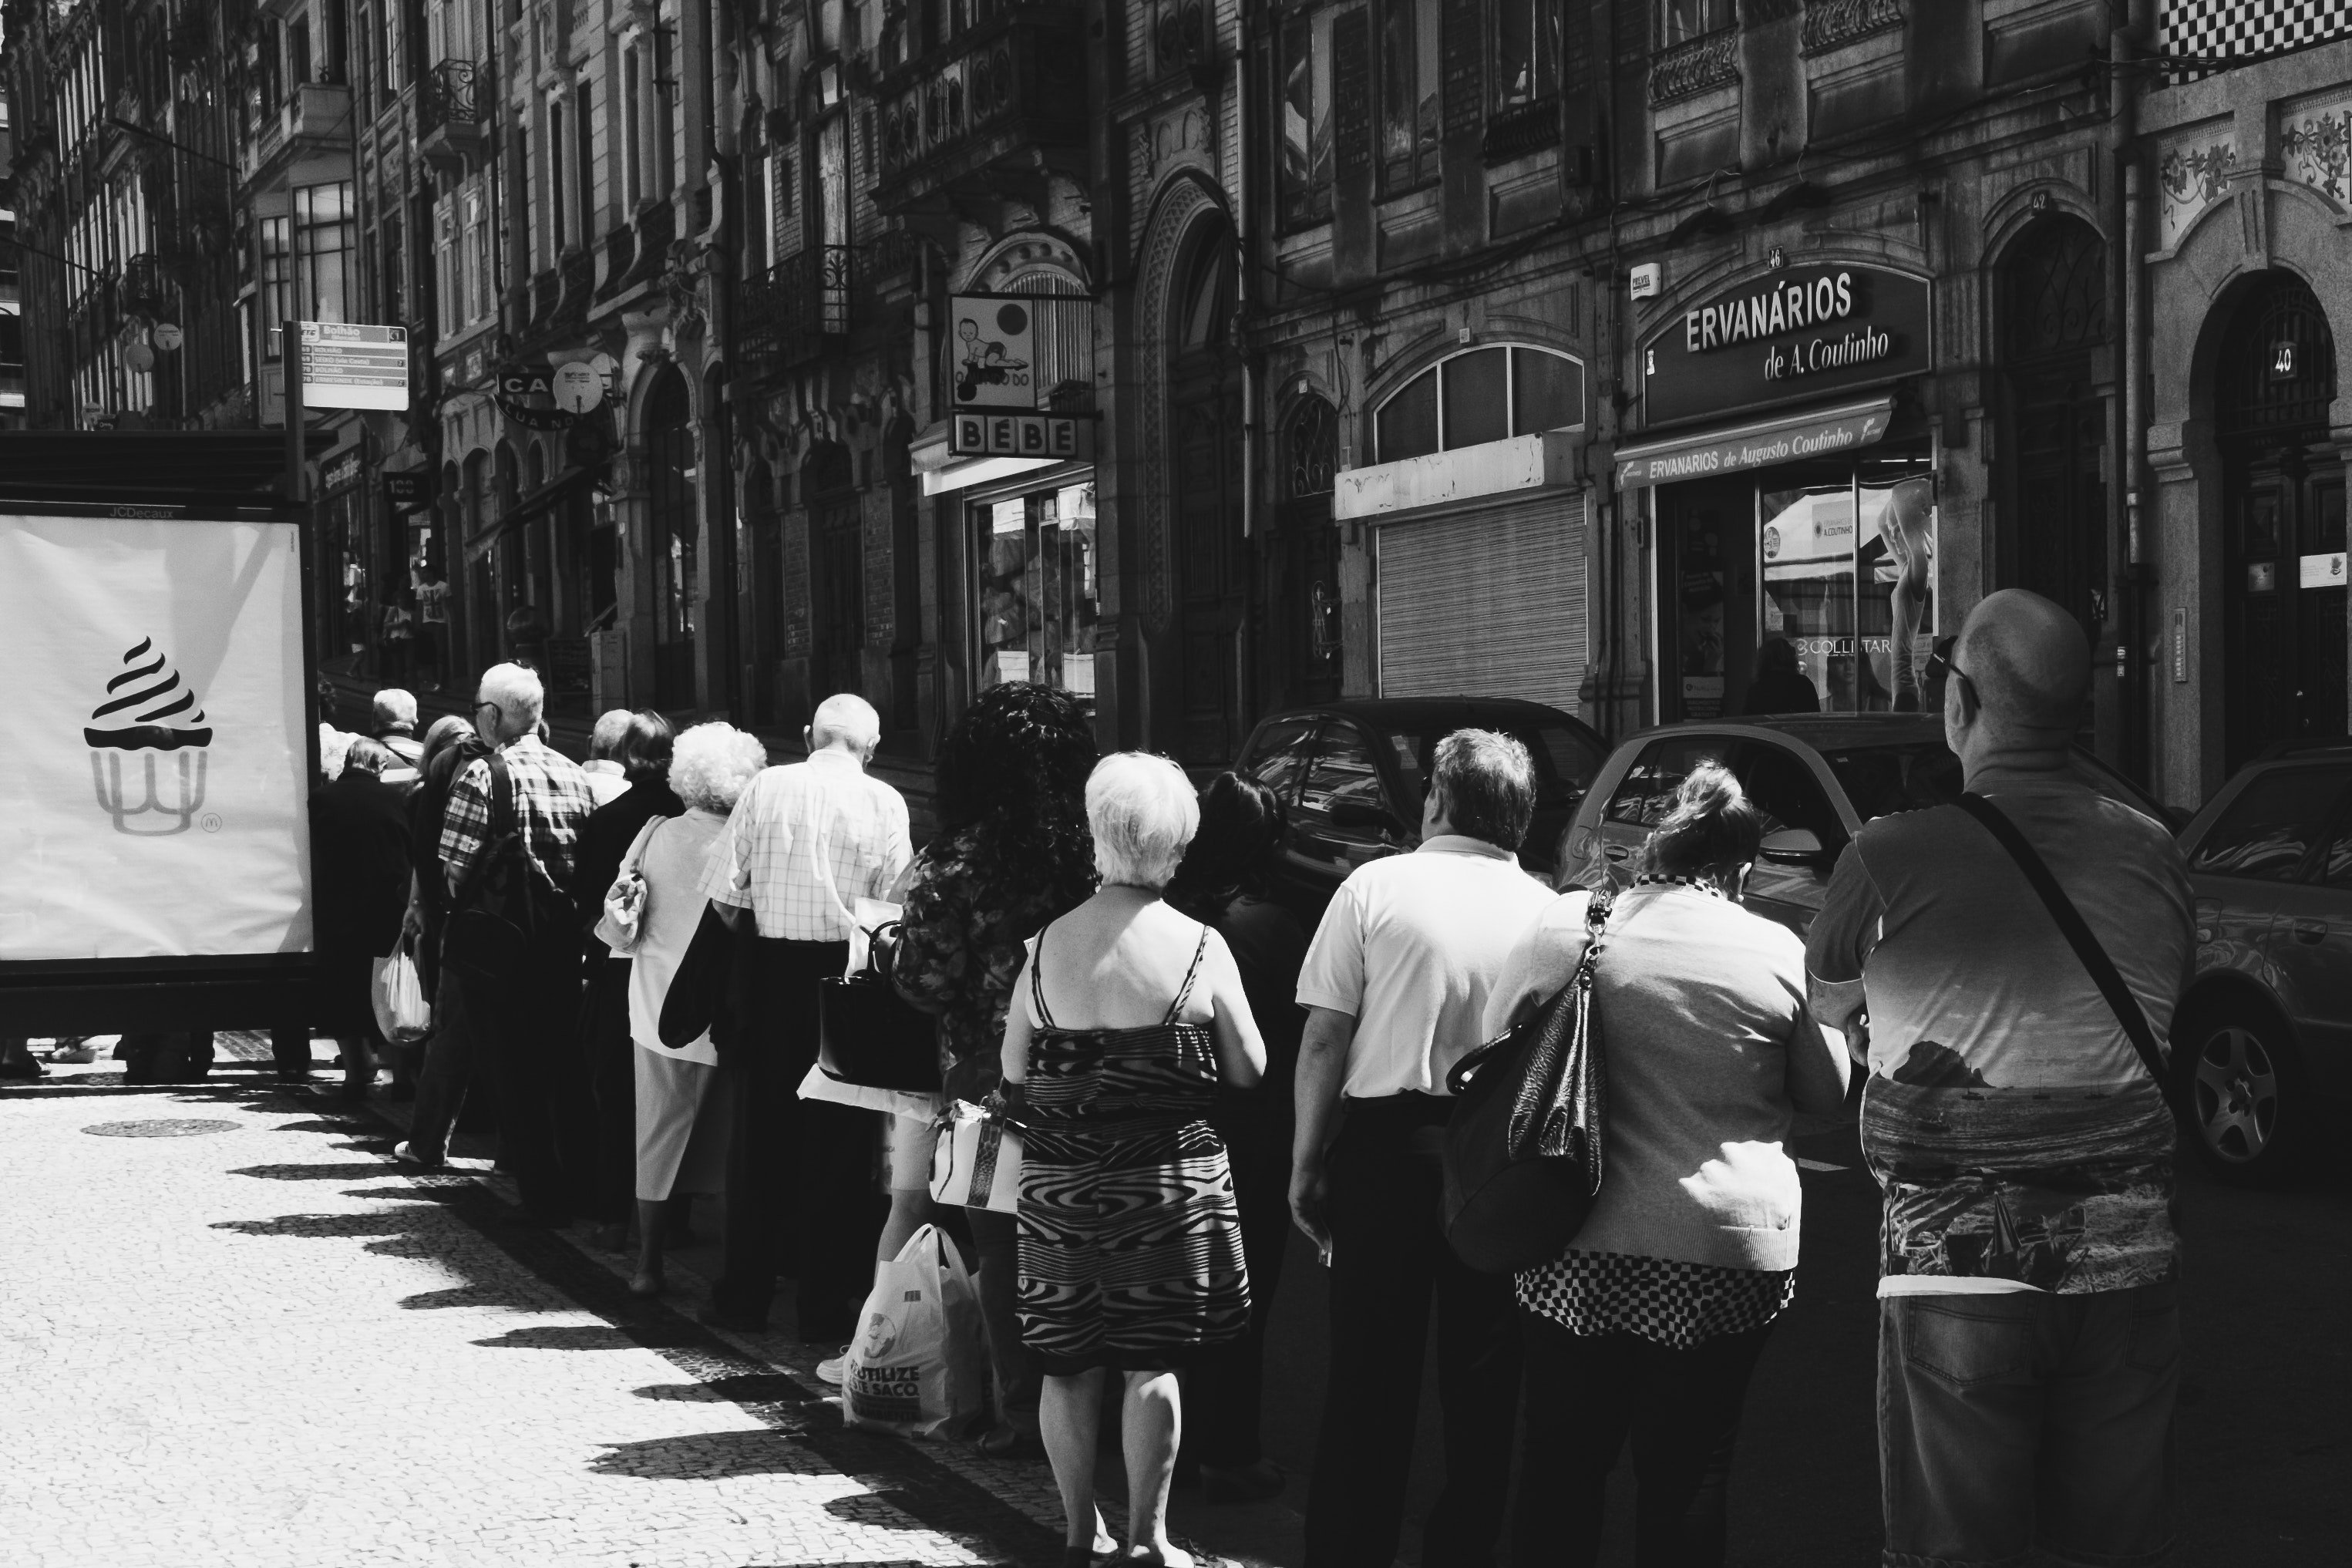 A group of people on a queue   Photo: Pexels